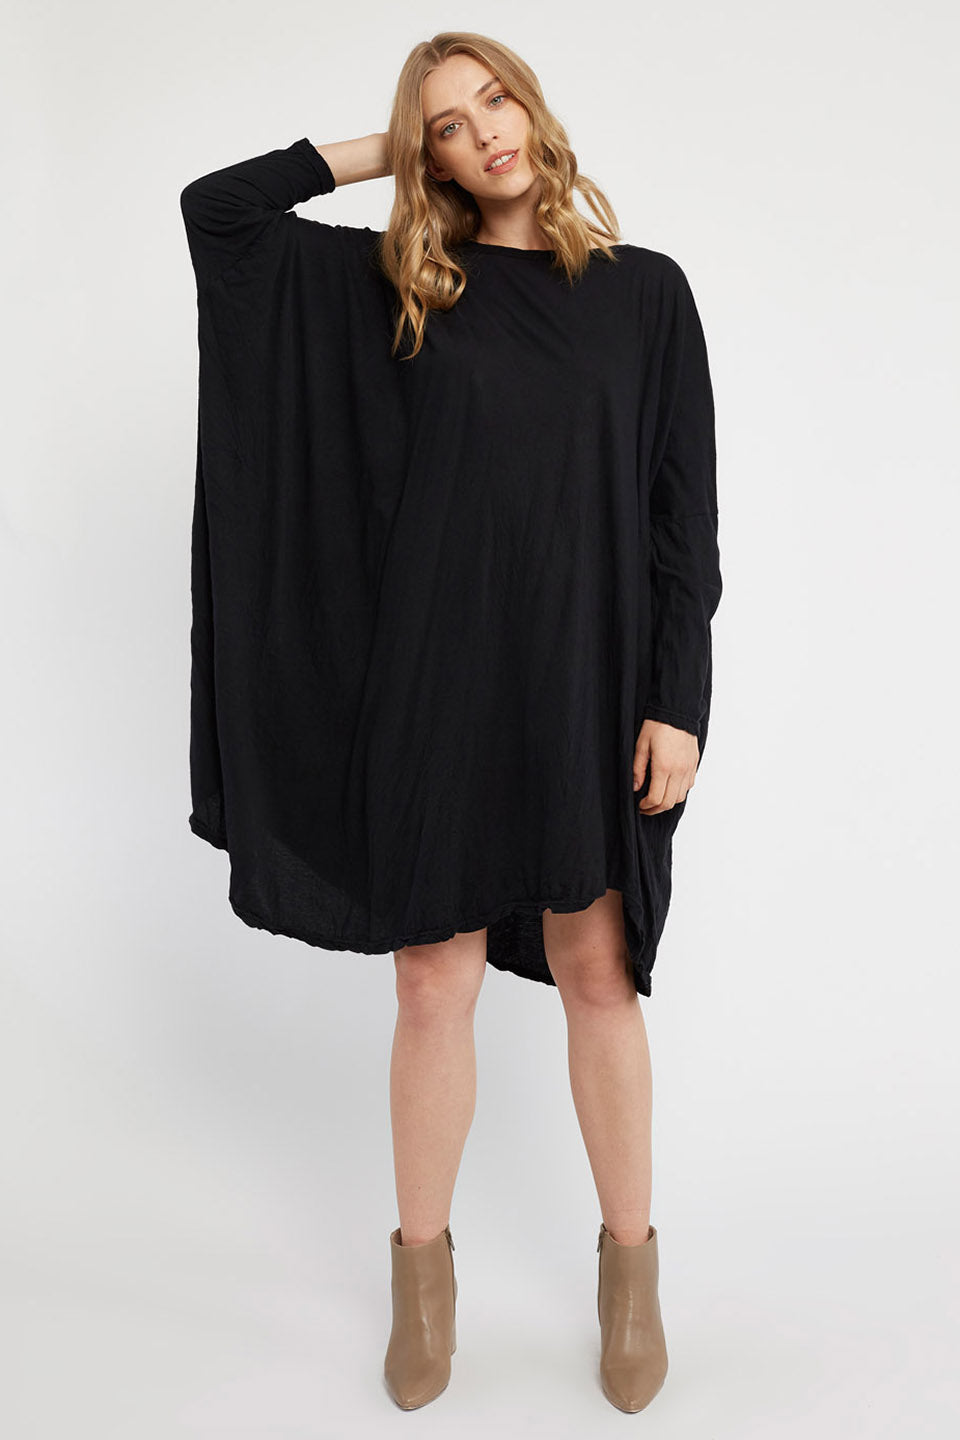 FAXI L/S DRESS - NOIR